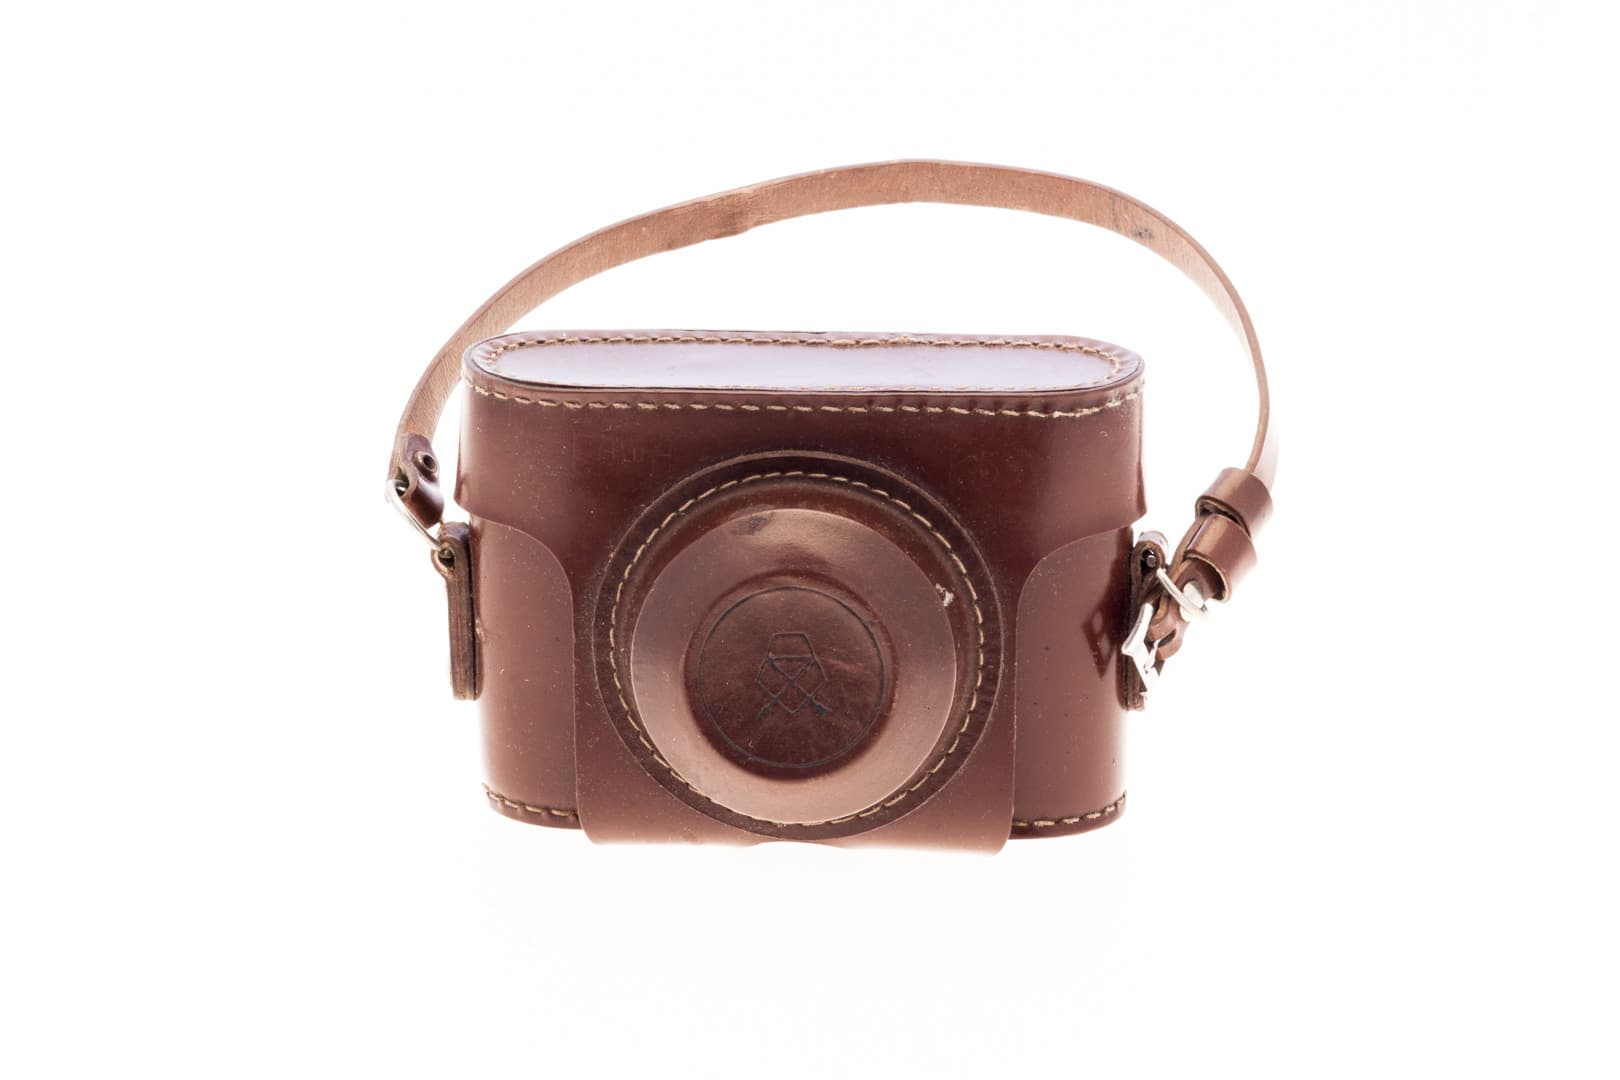 Smena 2 (Смена) – Soviet 35mm Compact Film Camera Inside Leather Cover